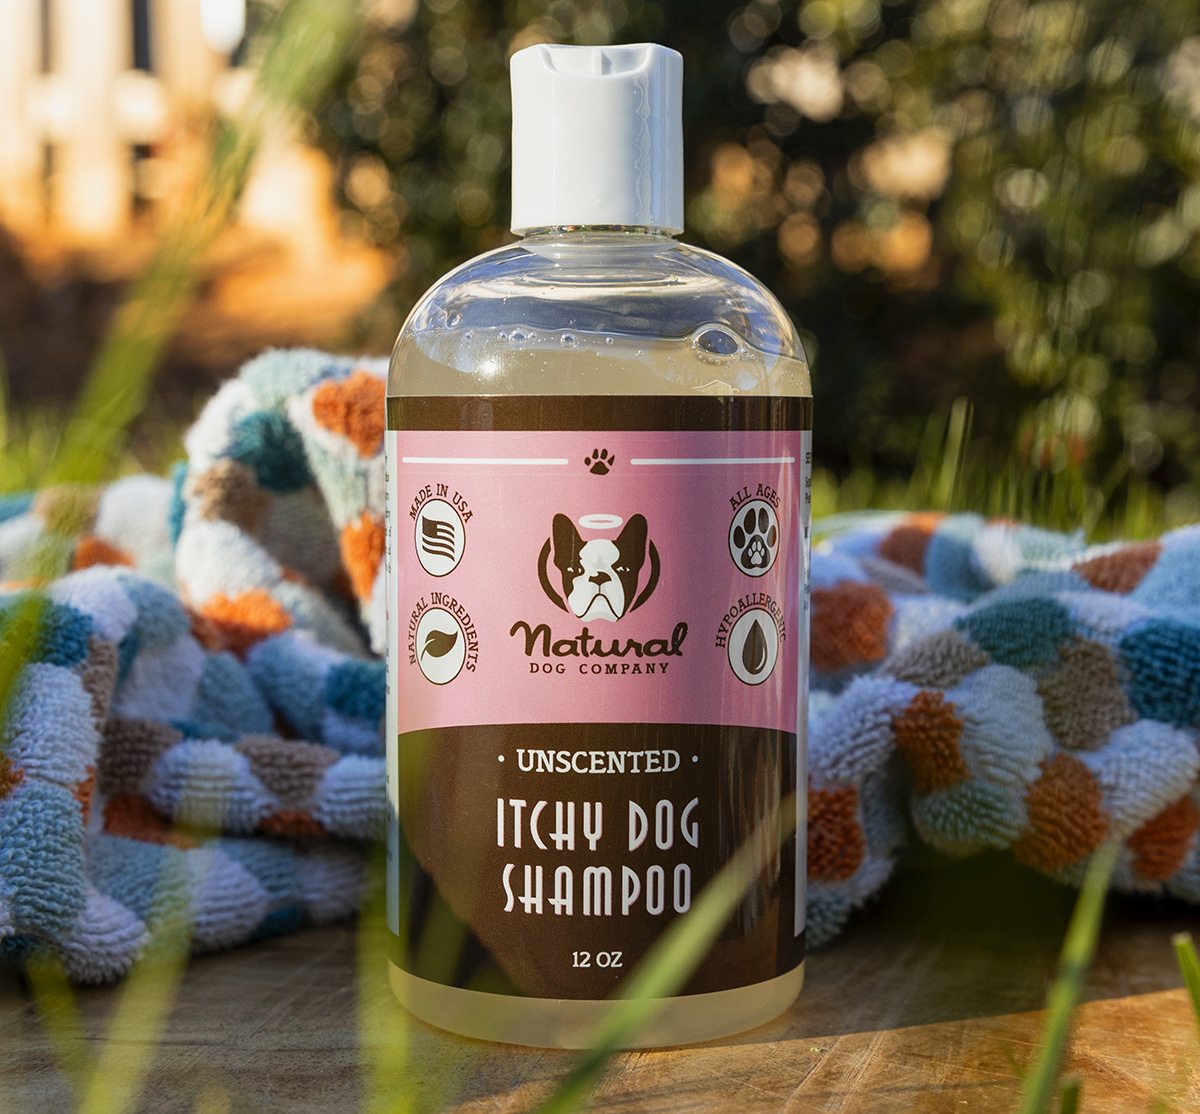 Bottle of all-natural shampoo for itchy dogs, outside next to a towel.